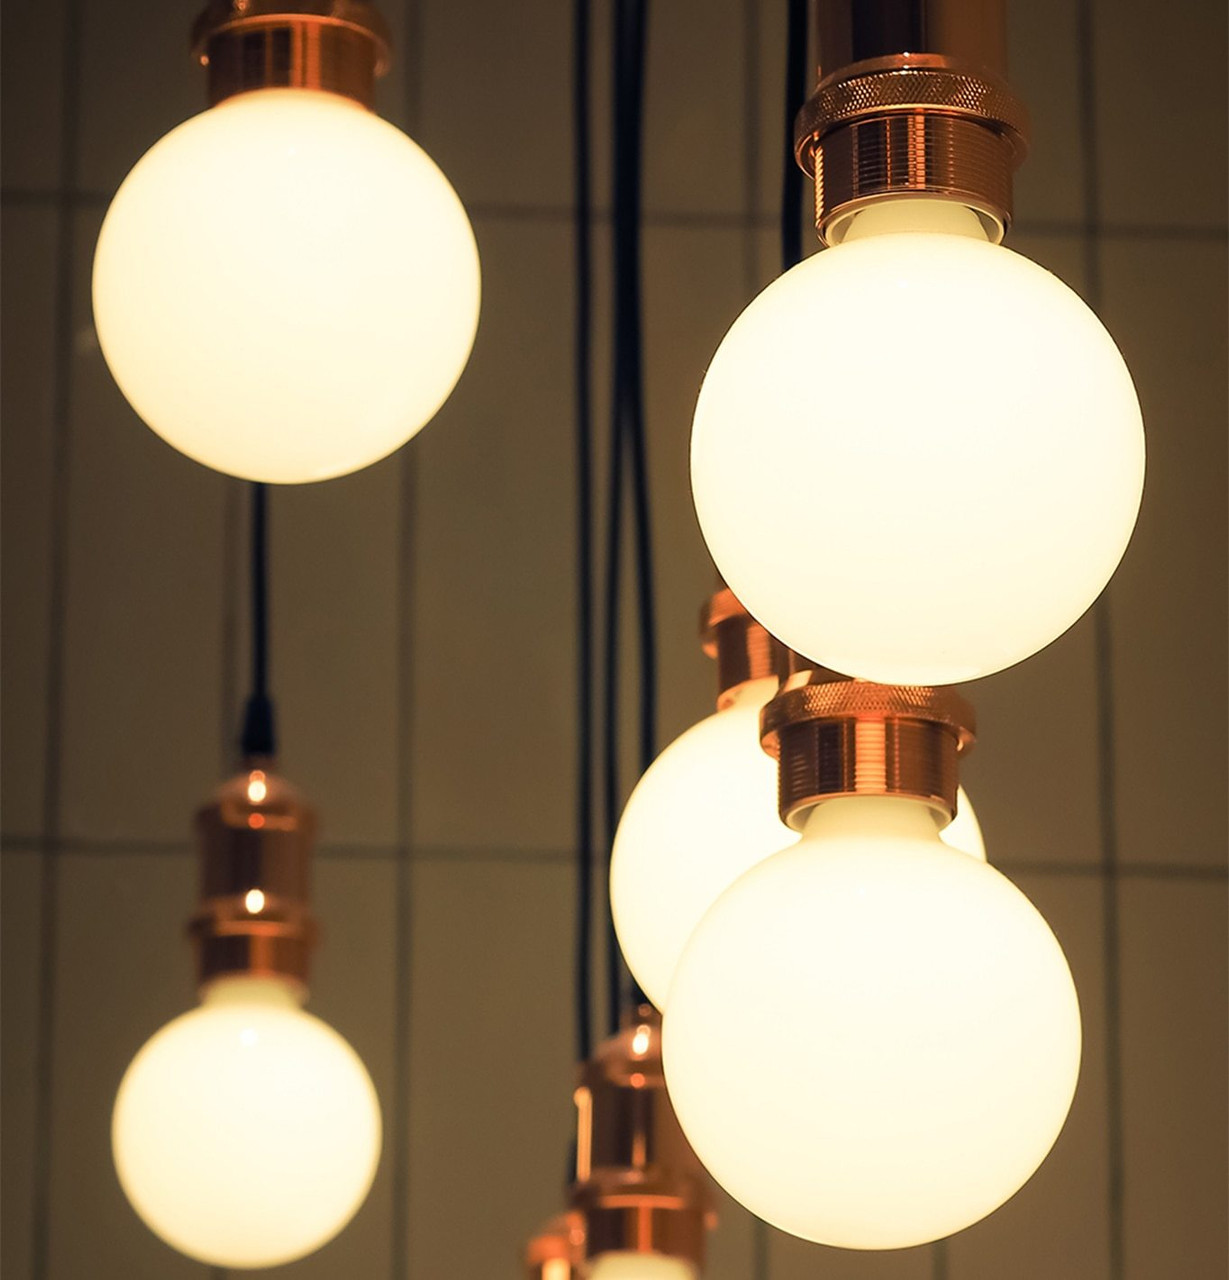 LED Dimmable Globe Extra Warm White Light Bulbs